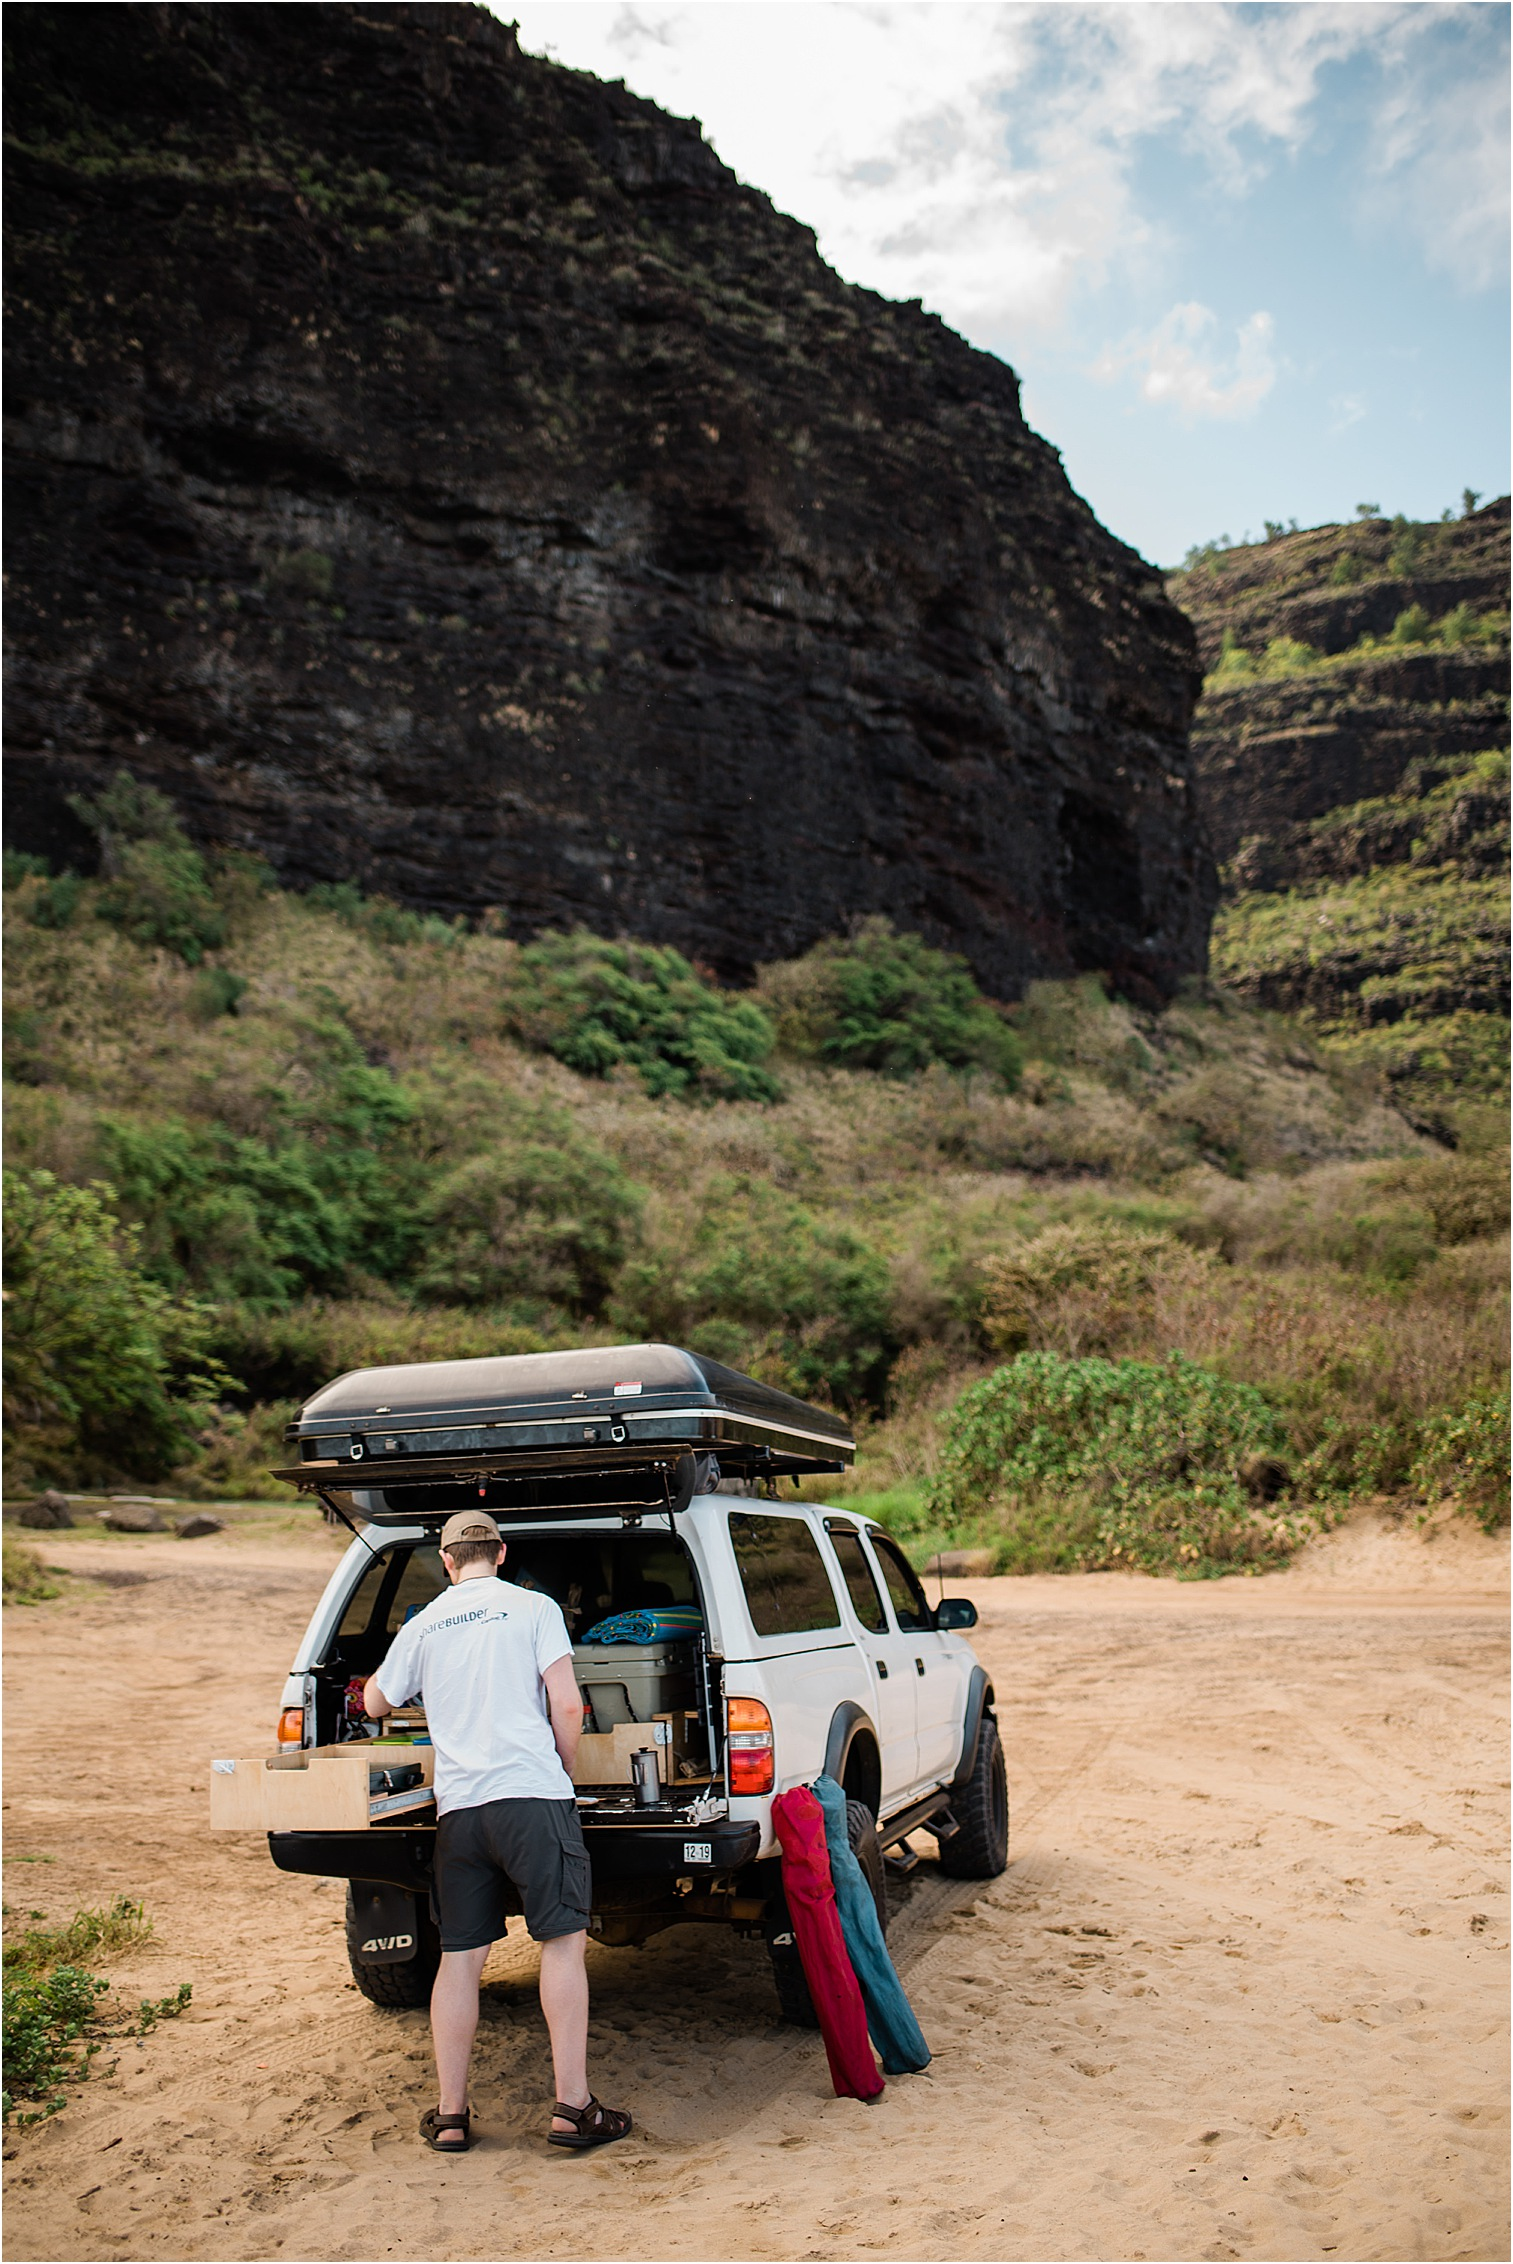 Devon loading up the camper truck from Kauai Overlander at Polihale Beach State Park. Image by Forthright Photo